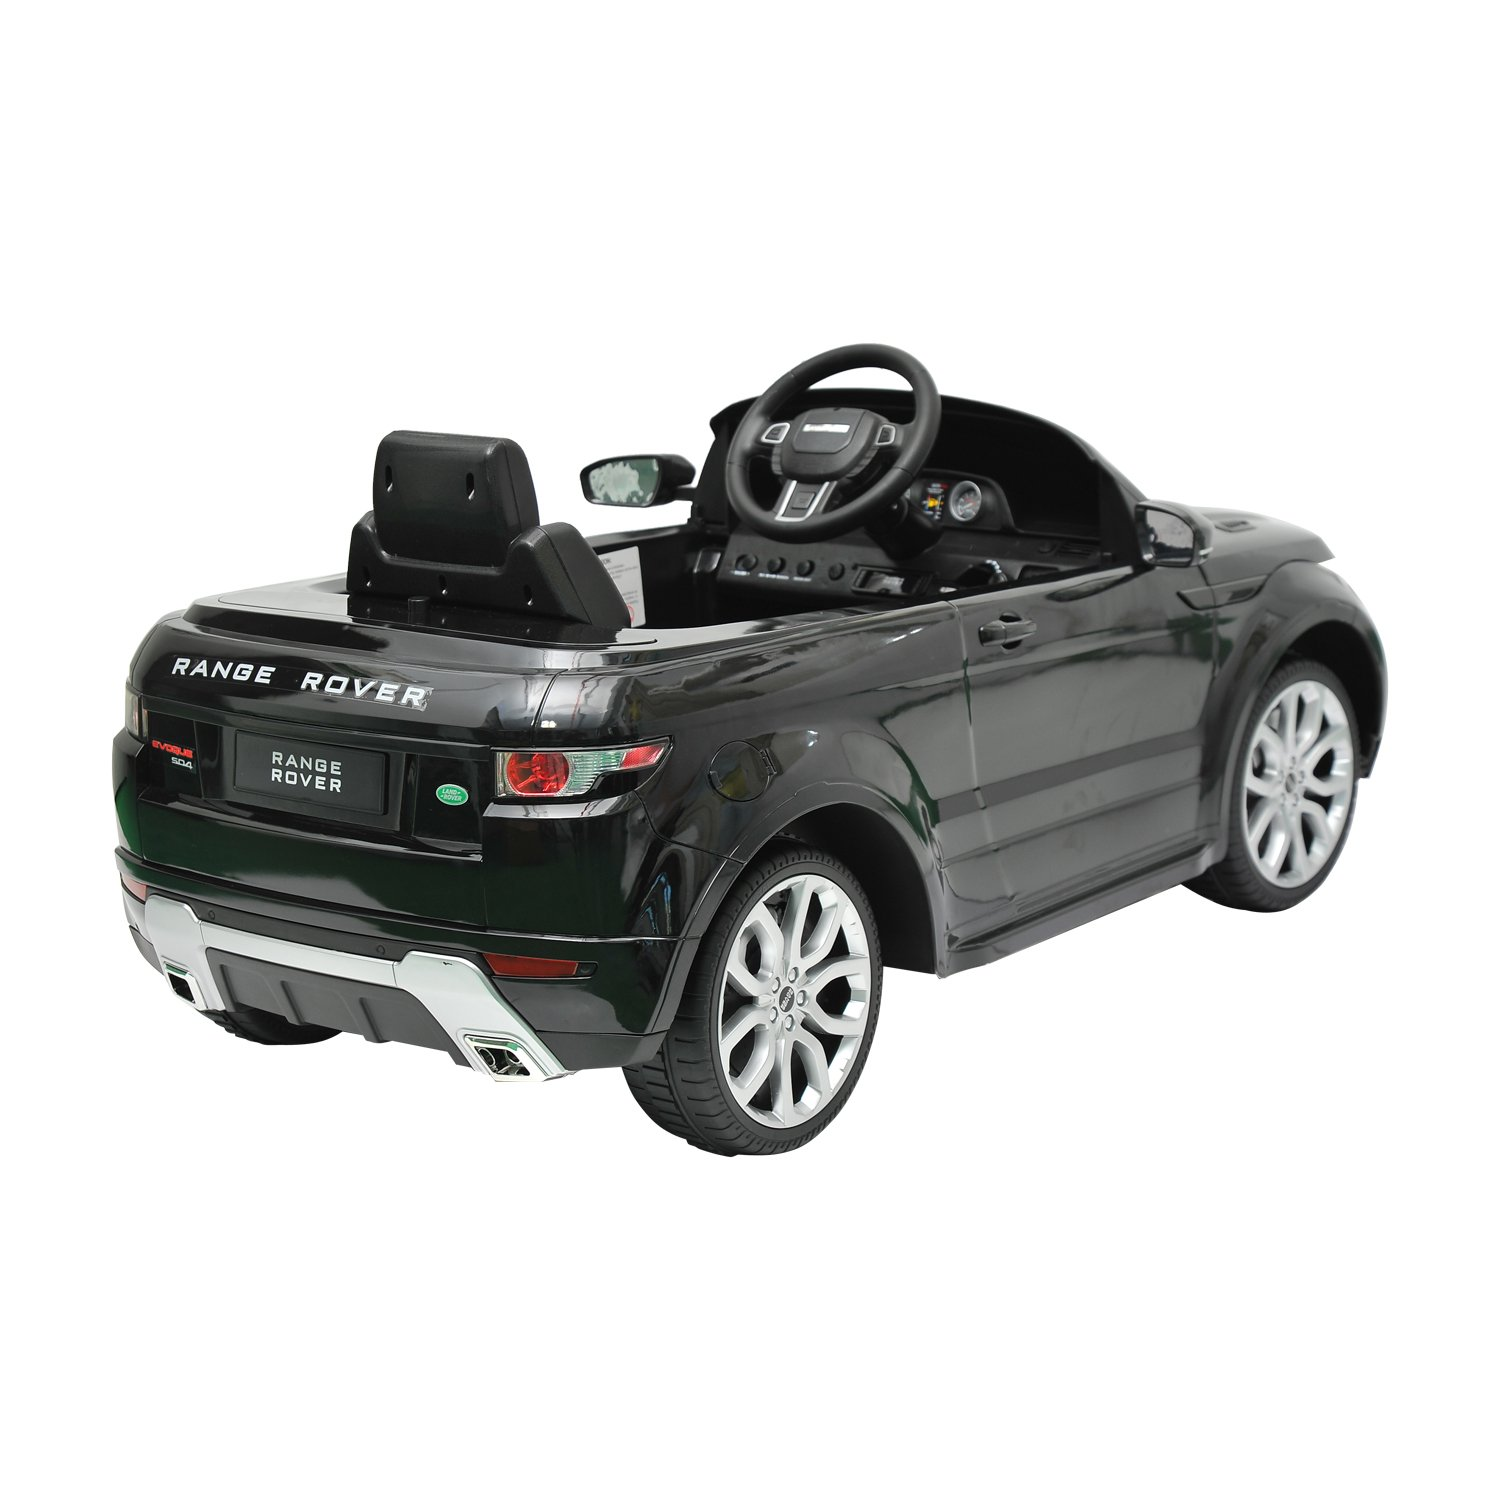 Land Rover Evoque Kids 6v Electric Ride On Toy Car W Range Wiring Diagrams Parent Remote Control Black Toys Games